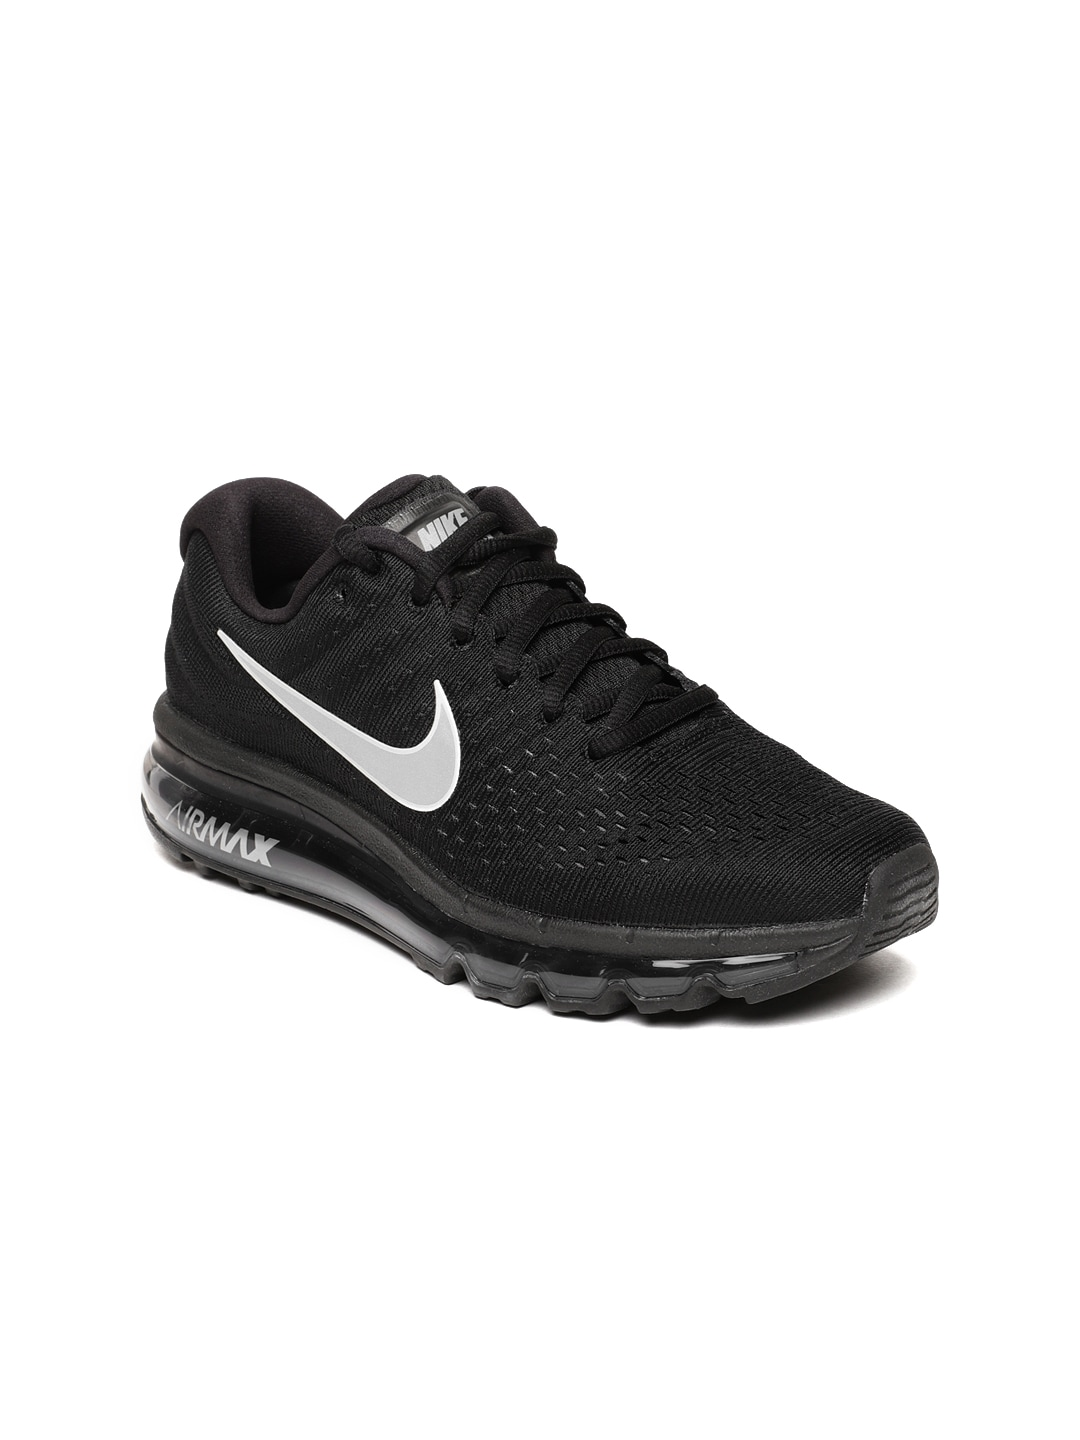 Nike Air Max Women - Buy Nike Air Max Women online in India 6858ef7451